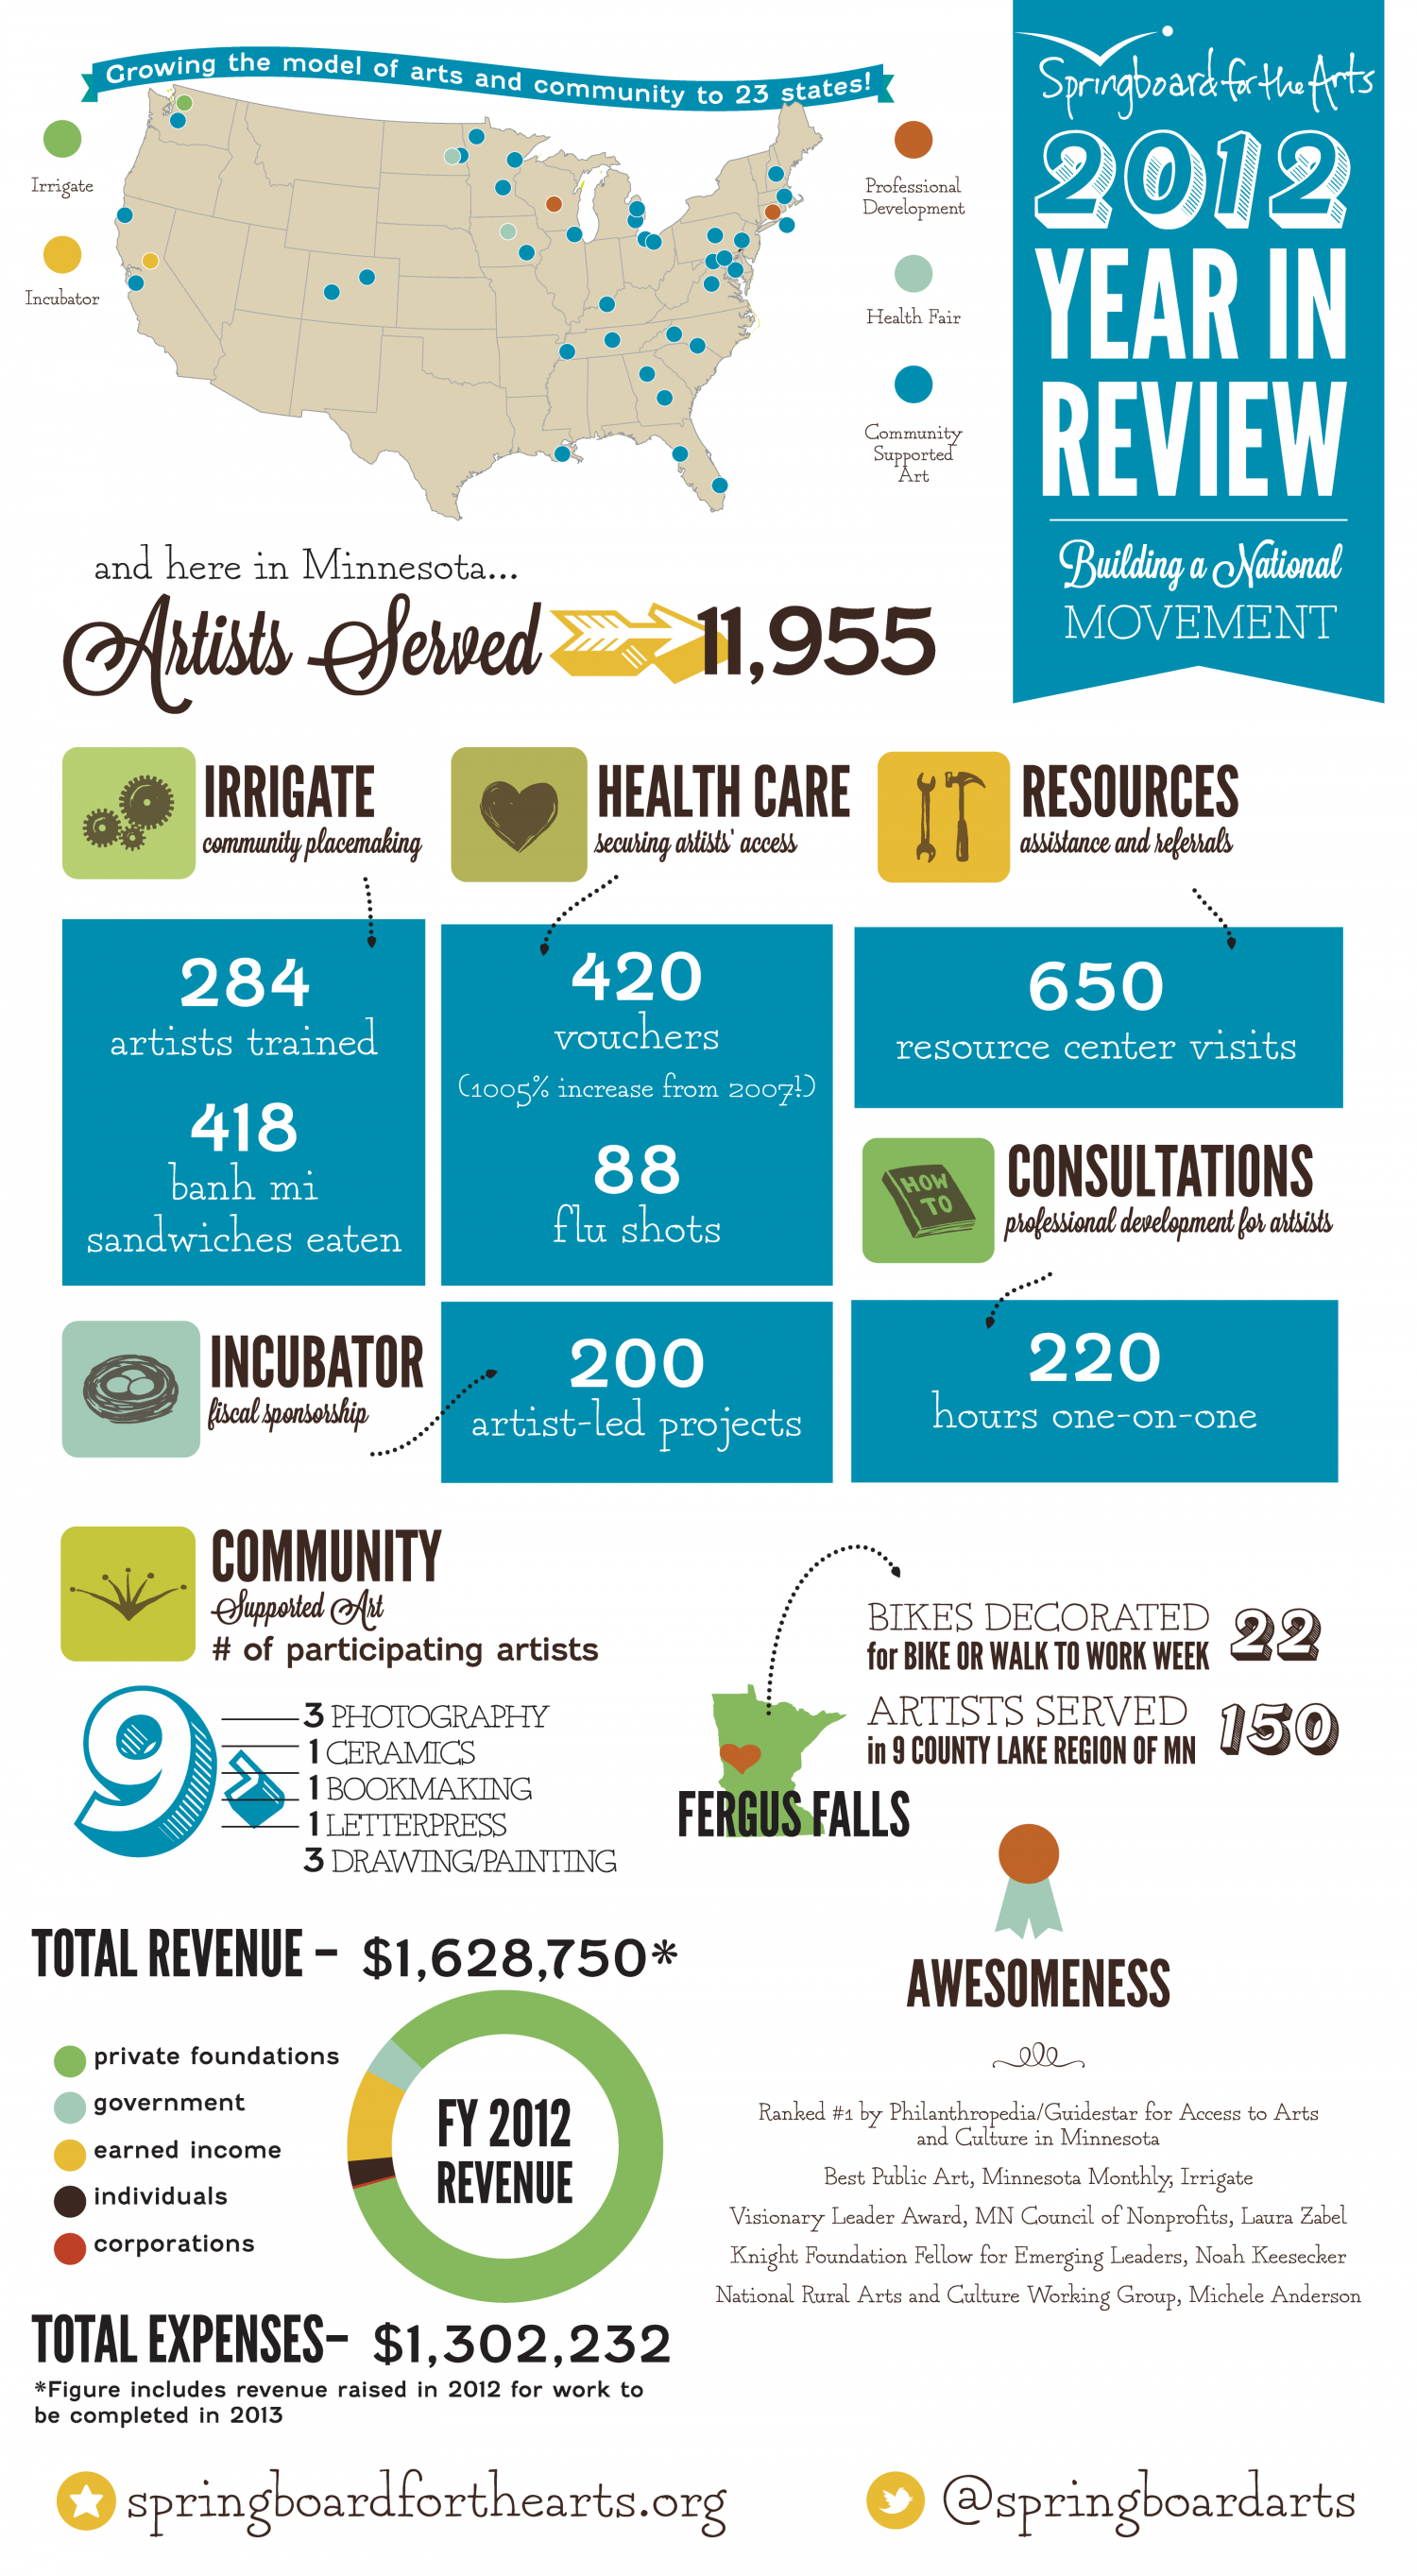 Springboard for the Arts 2012 Year in Review Infographic